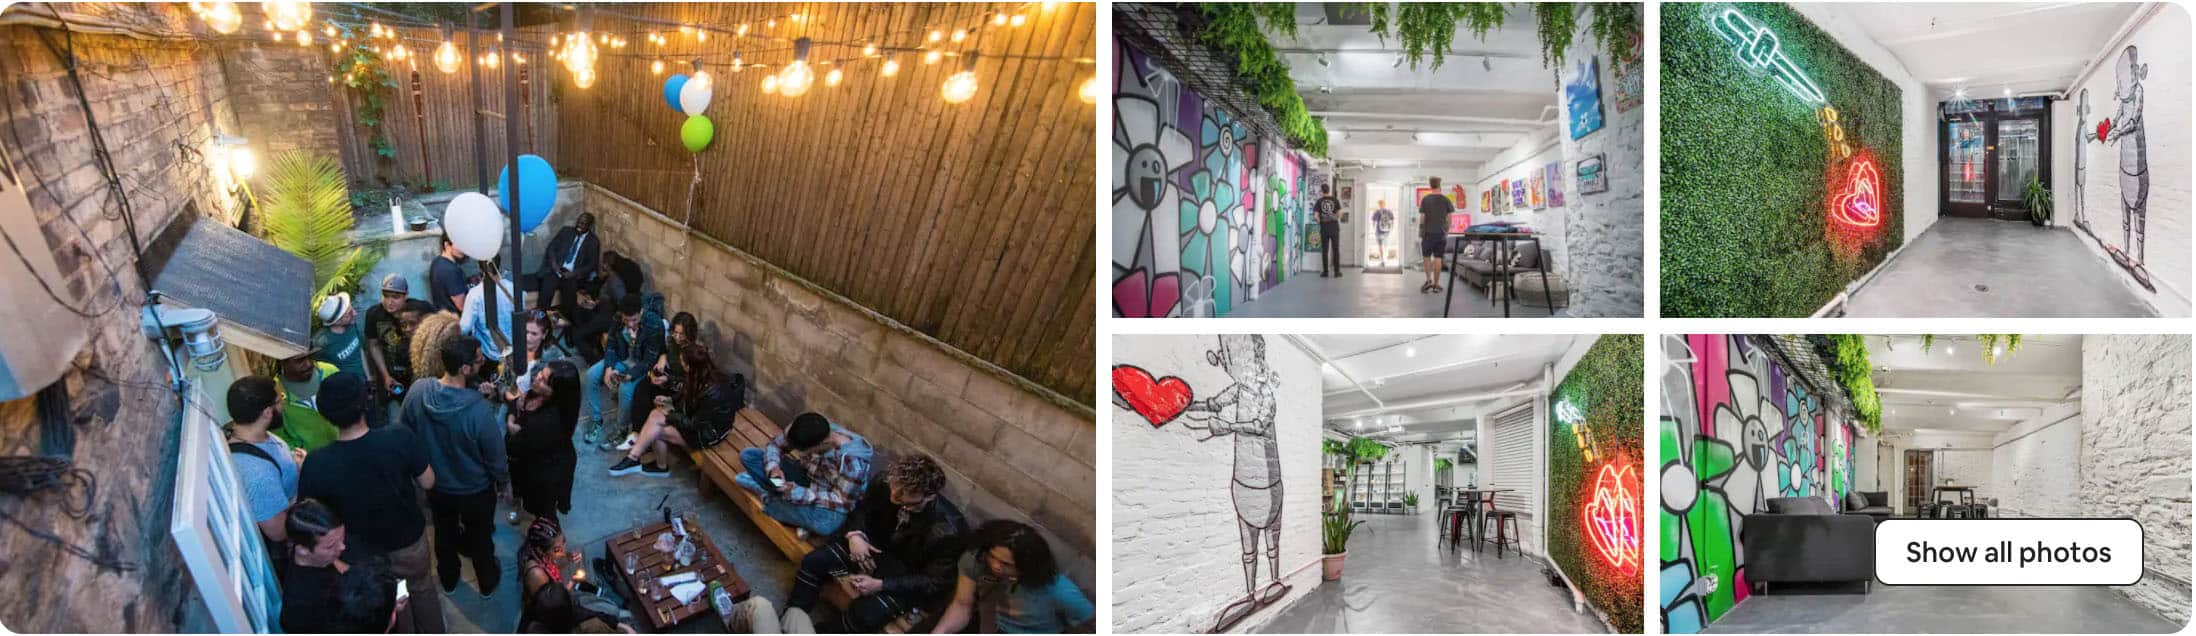 best Airbnb for parties in NYC - East Village event space